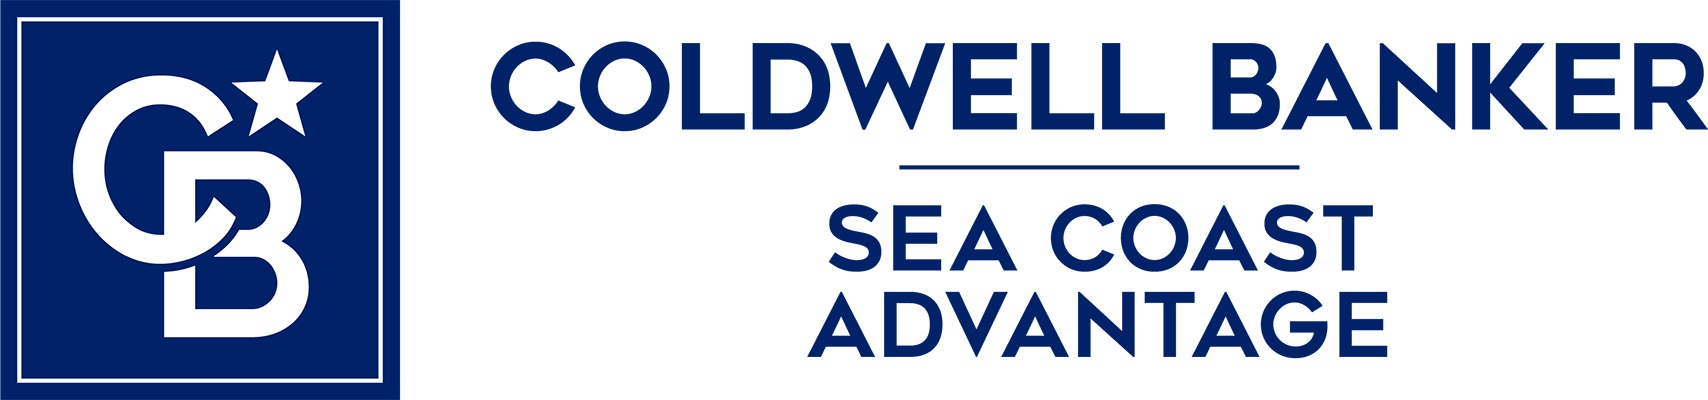 Chris Royal - Coldwell Banker Sea Coast Advantage Realty Logo